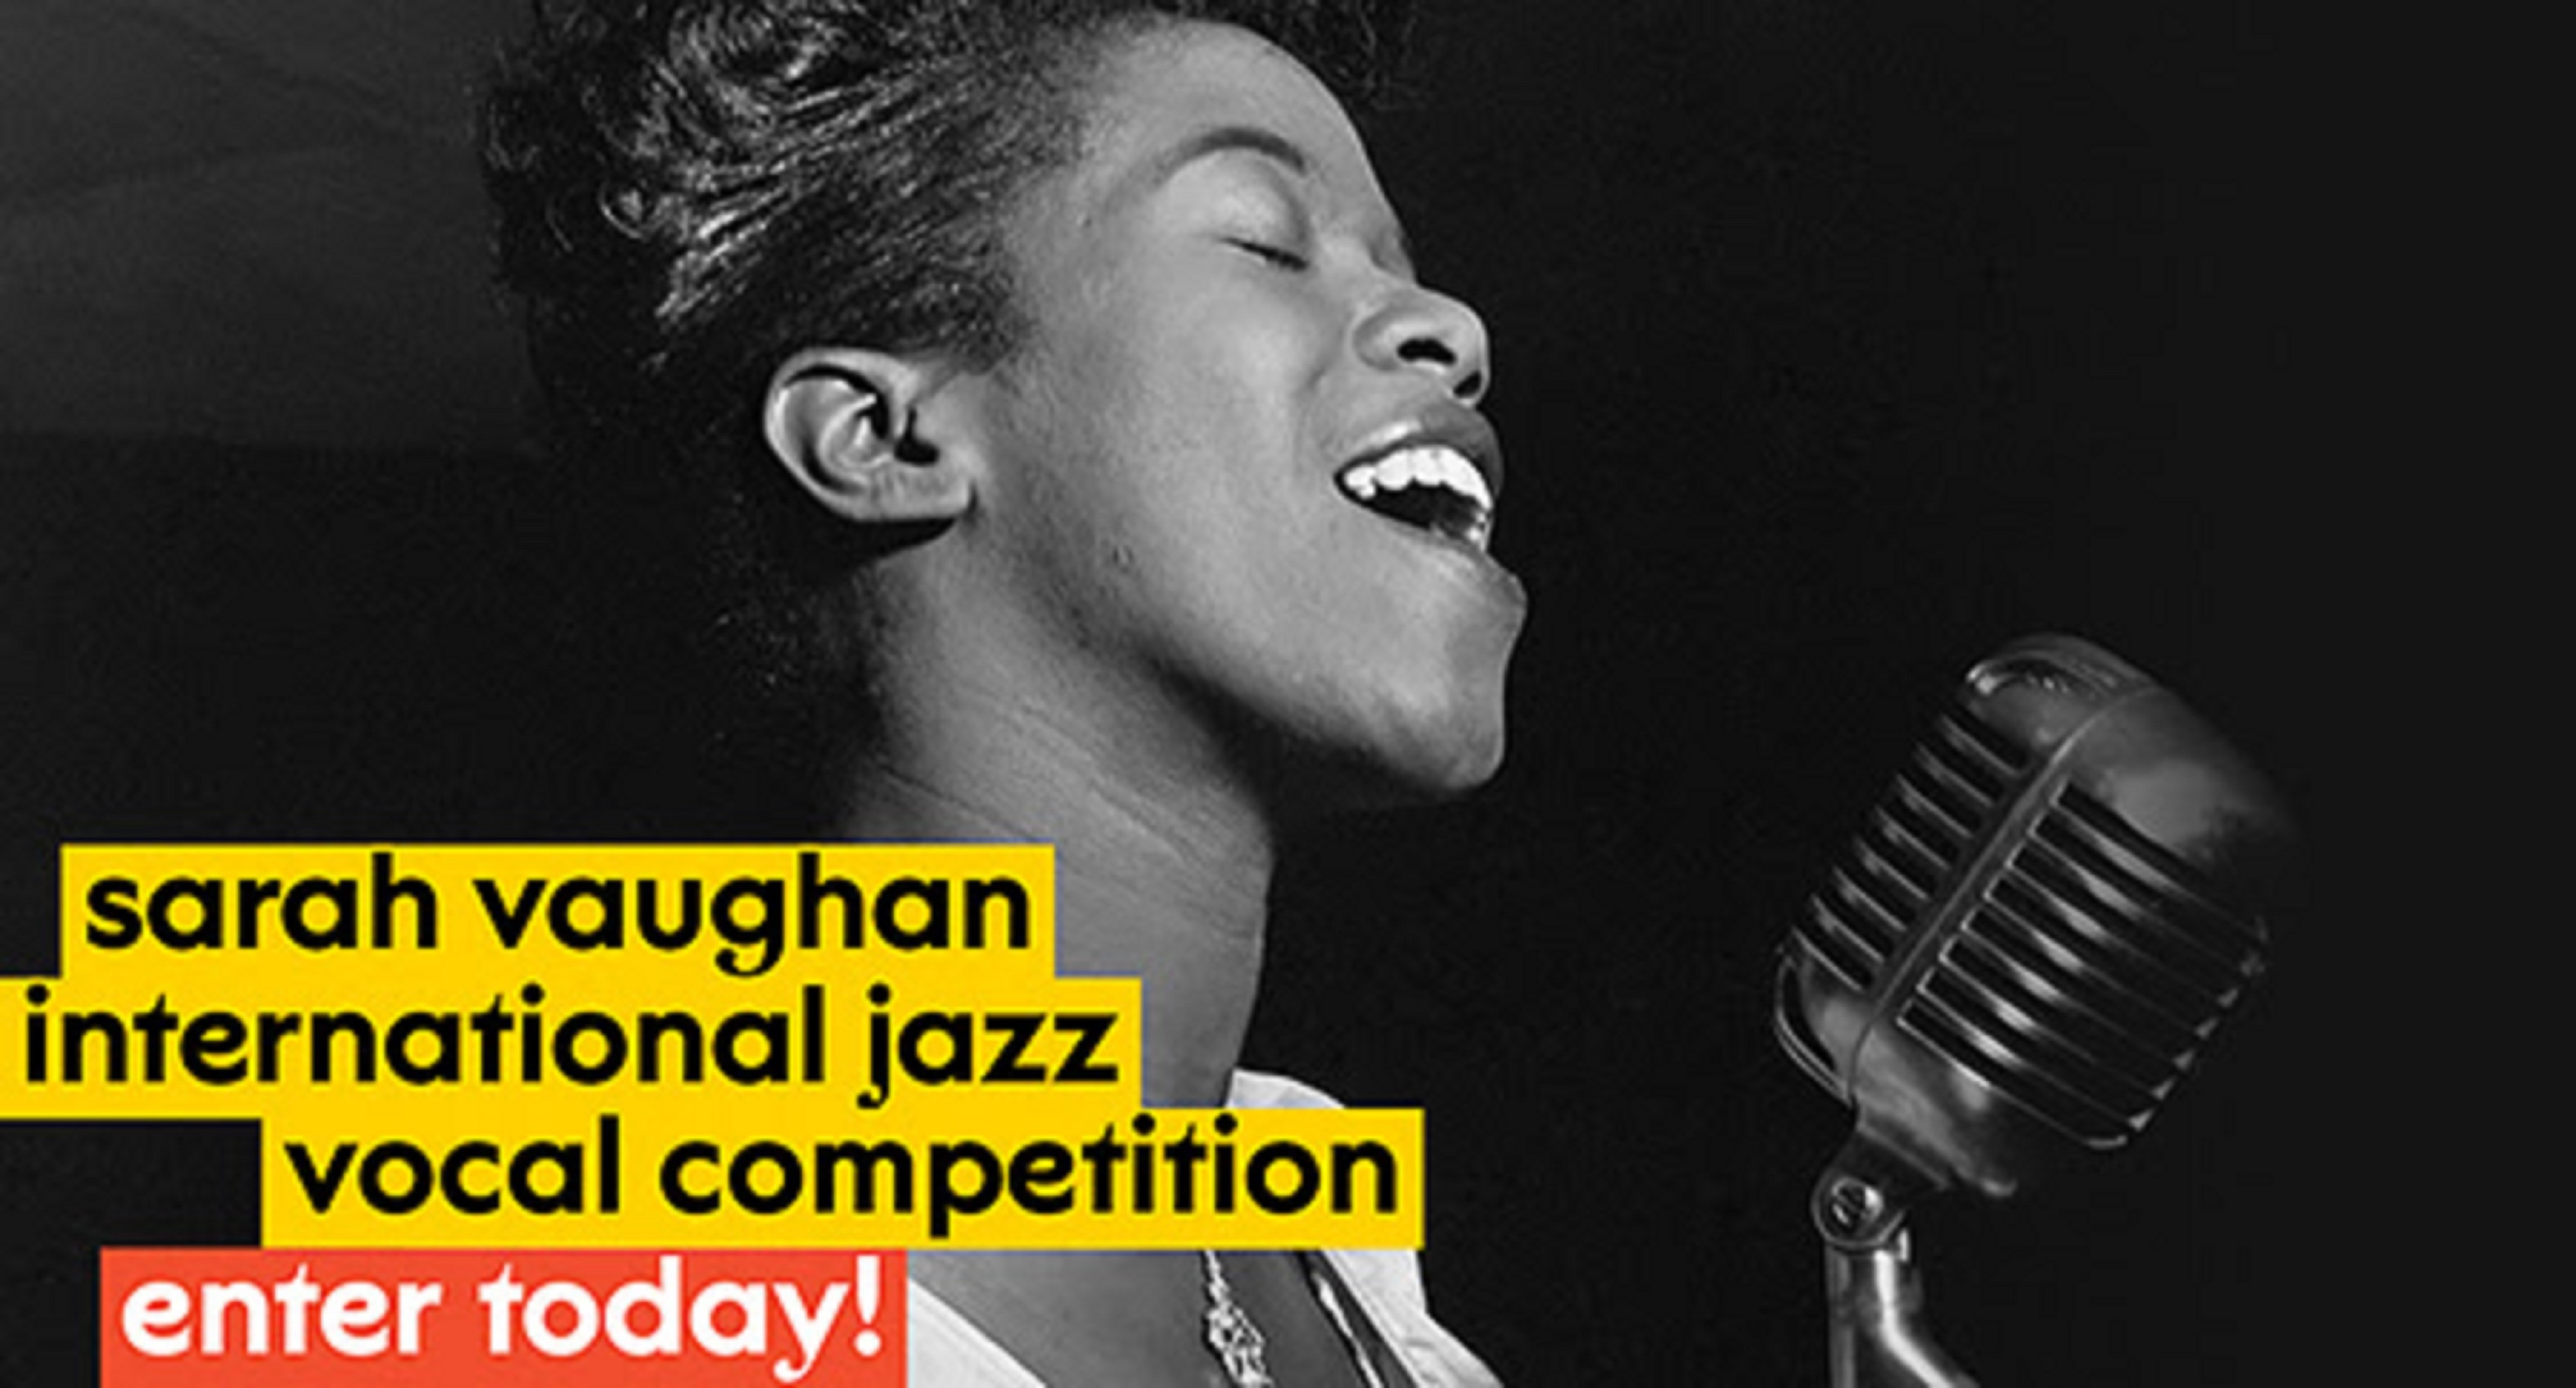 Sarah Vaughan International Jazz Vocal Competition